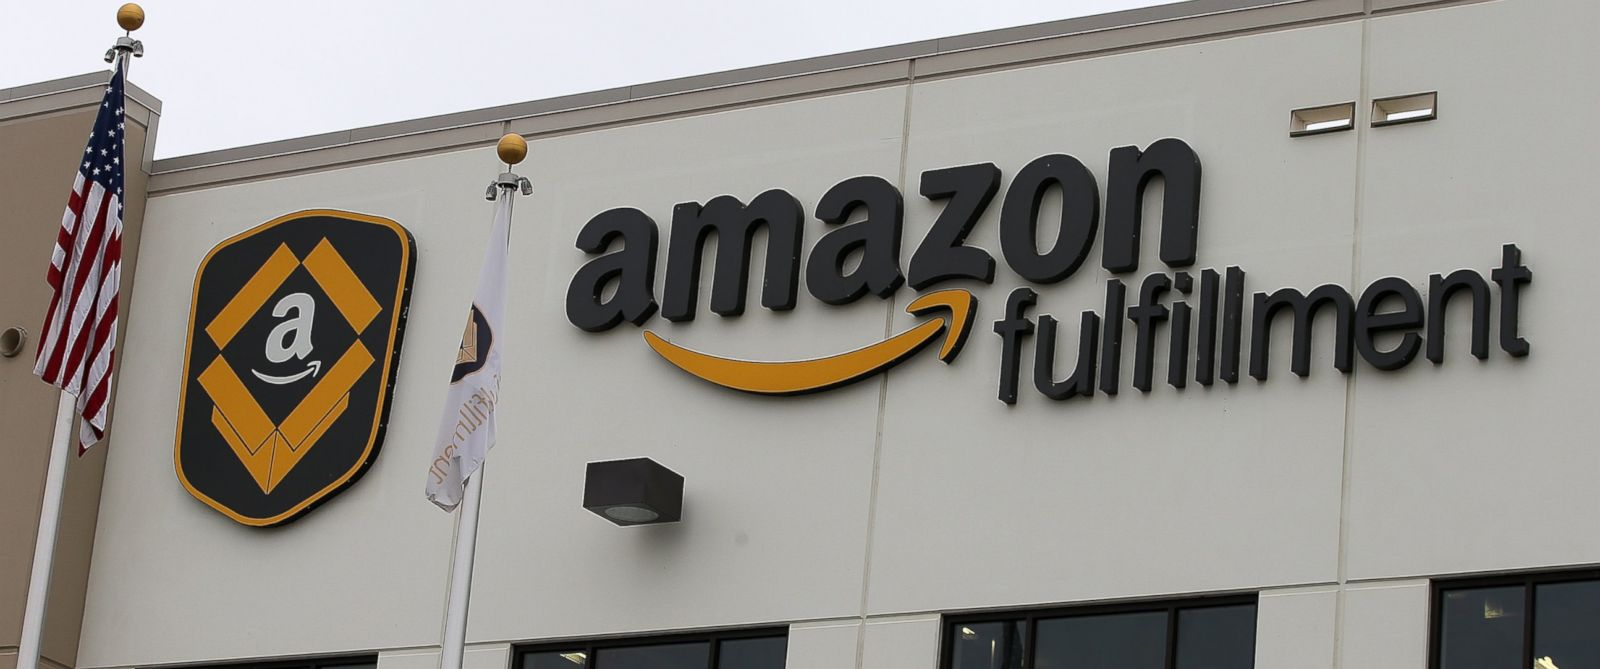 PHOTO: A sign is posted on the exterior of an Amazon fulfillment center in Tracy, Calif., Jan. 20, 2015.